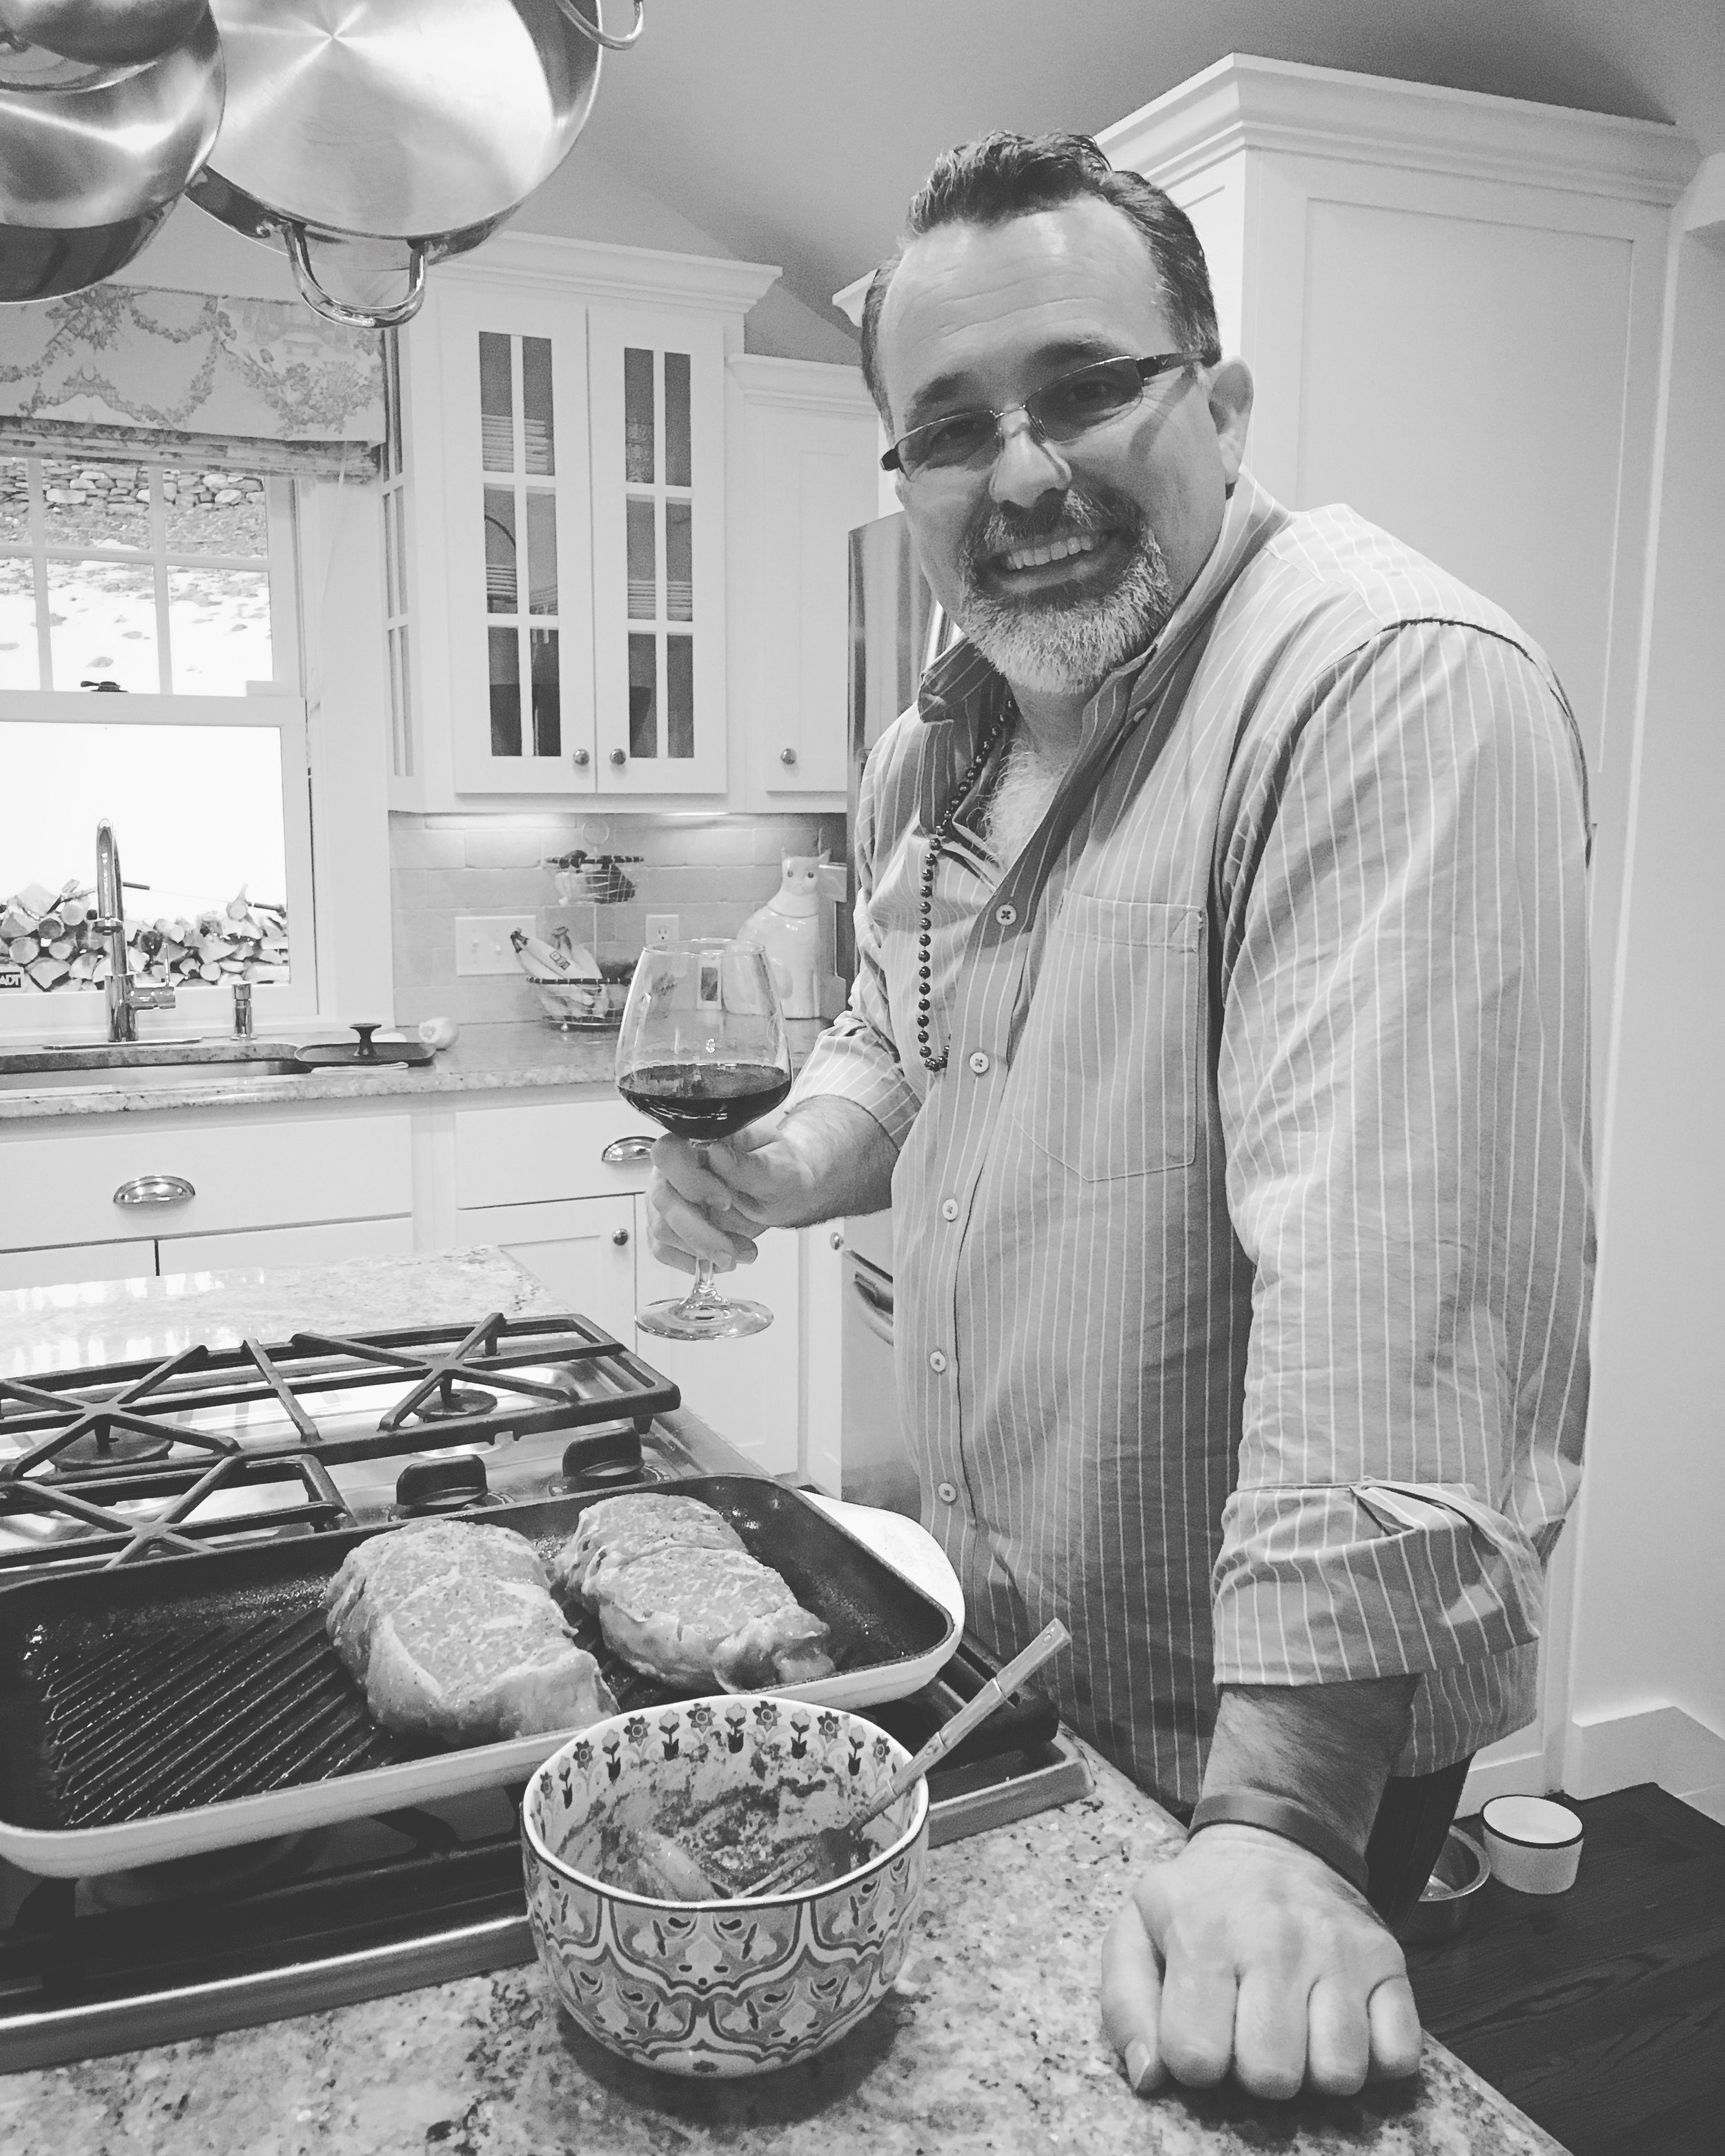 Scotty - I may not really be a chef but I play one on TV.